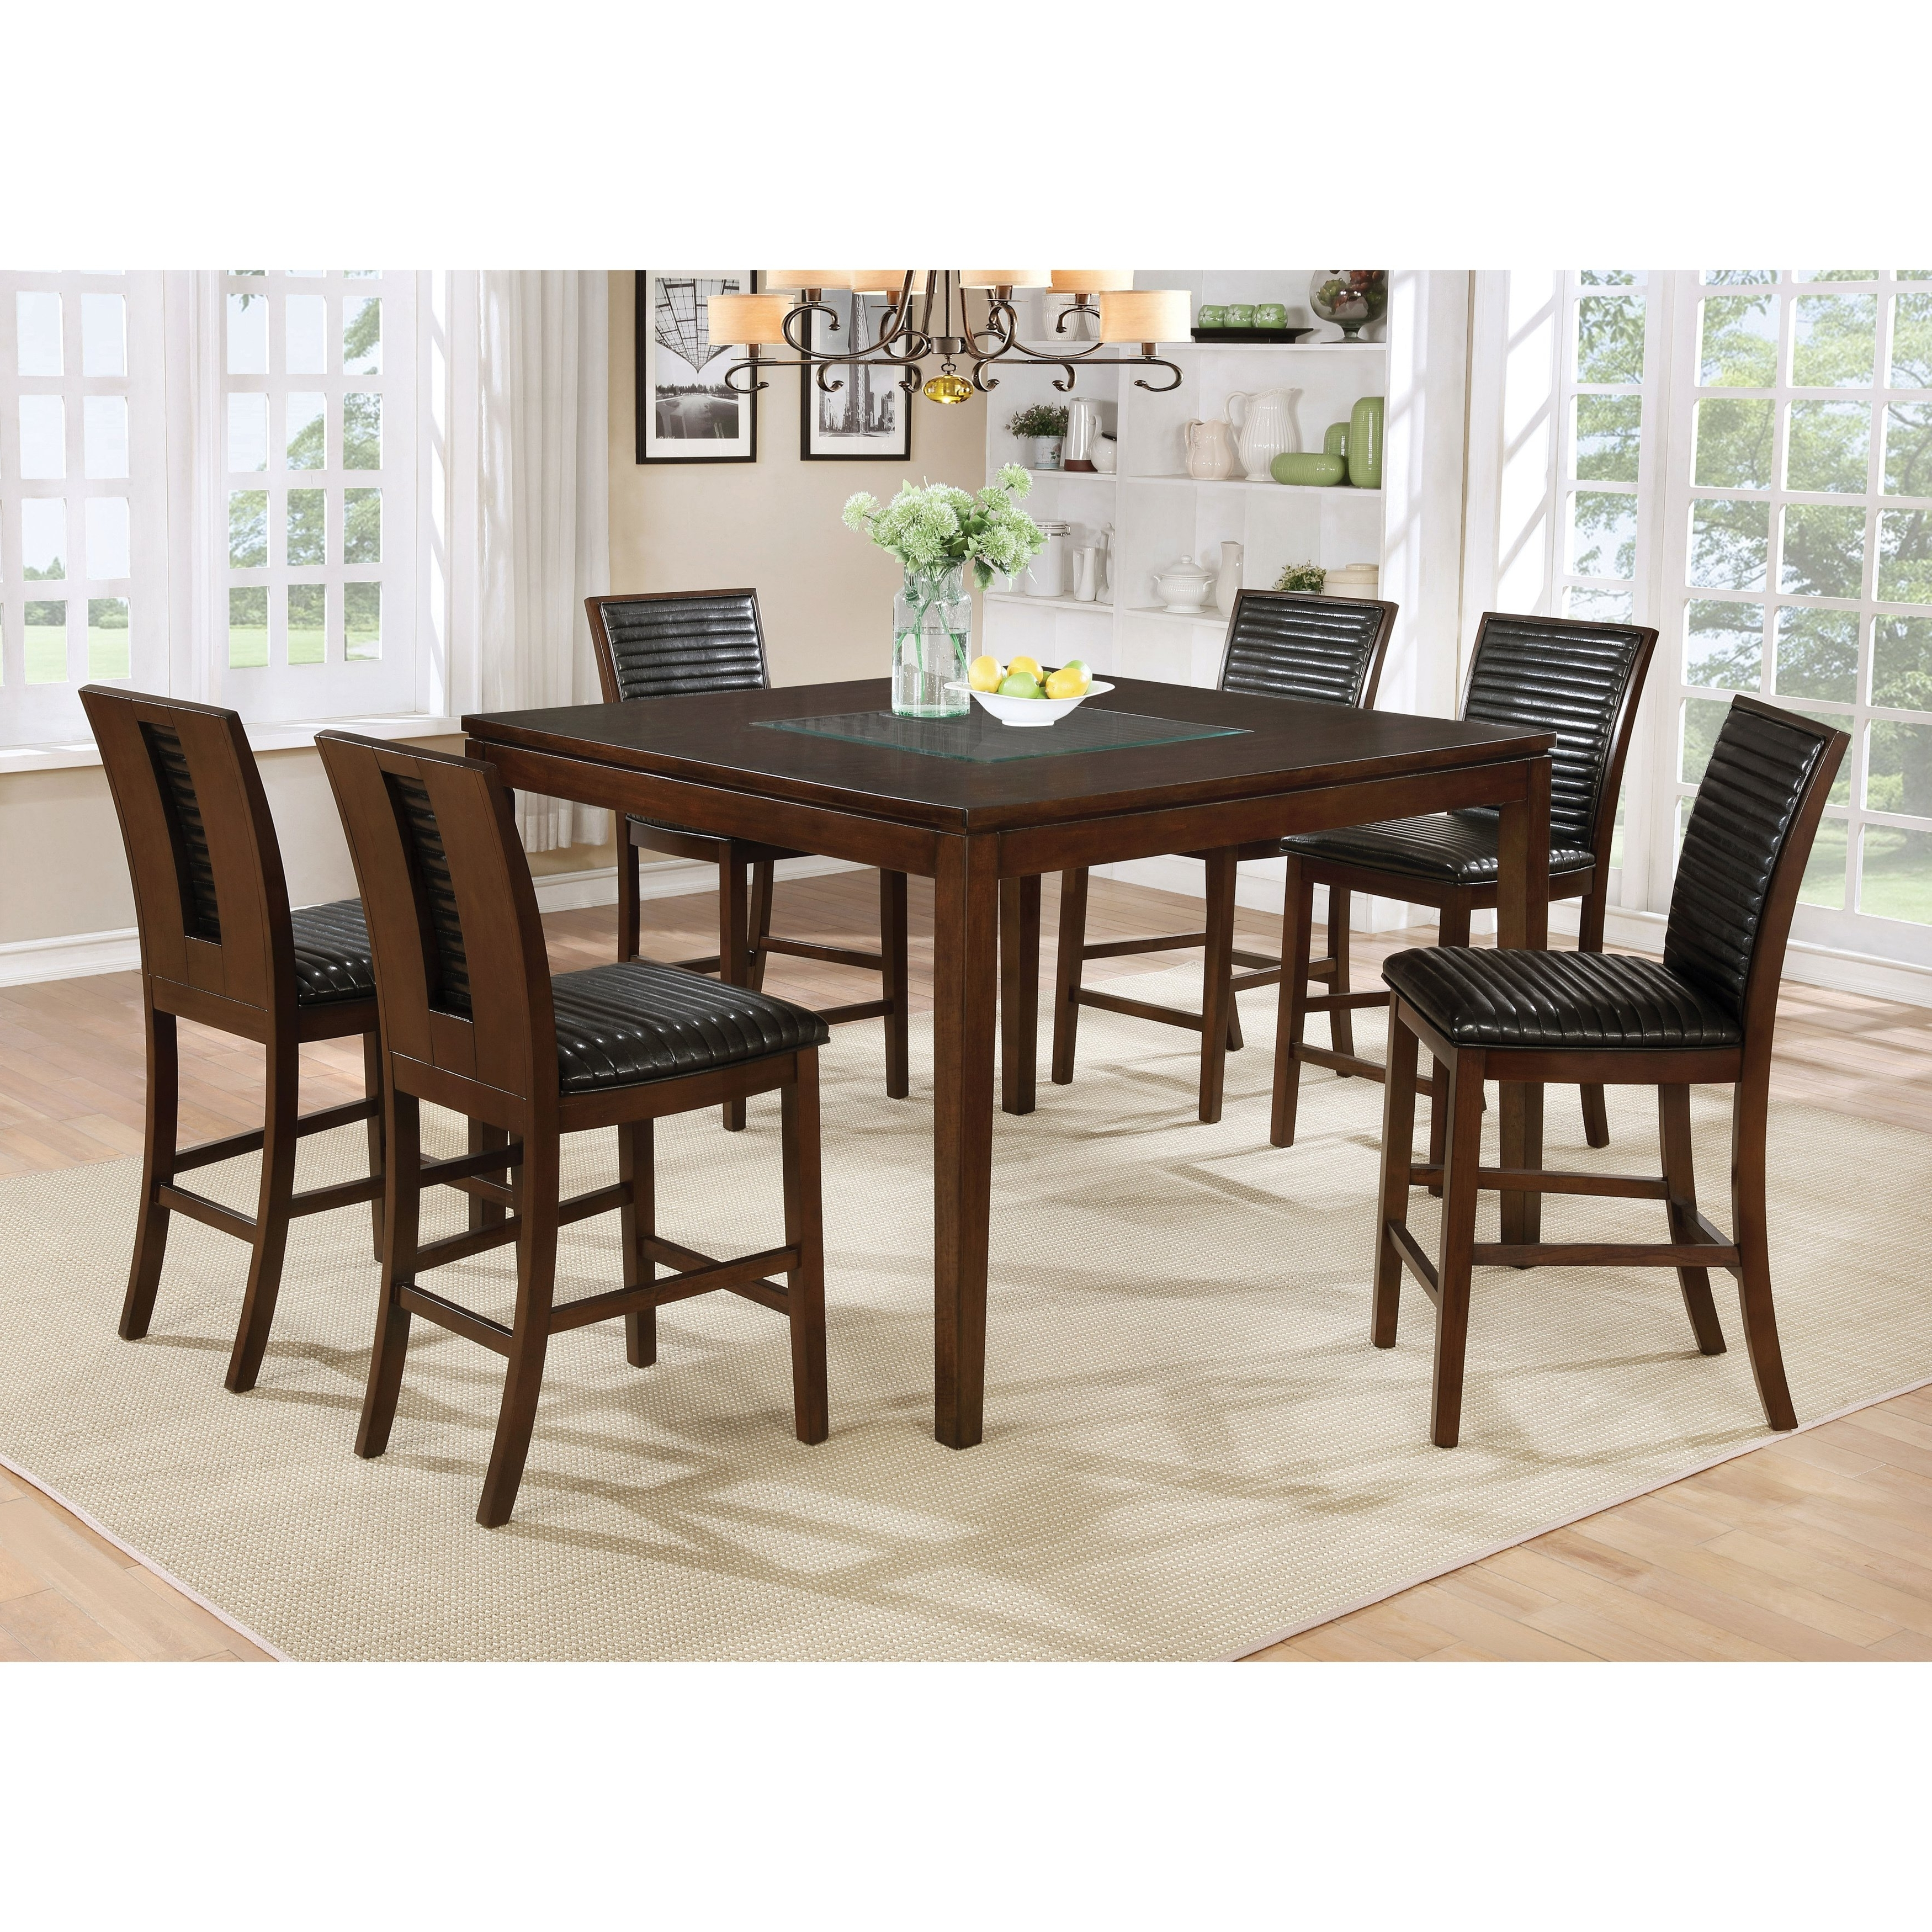 Shop Furniture Of America Gileon Walnut Wood And Faux Leather 7 Throughout Trendy Leon 7 Piece Dining Sets (View 18 of 25)